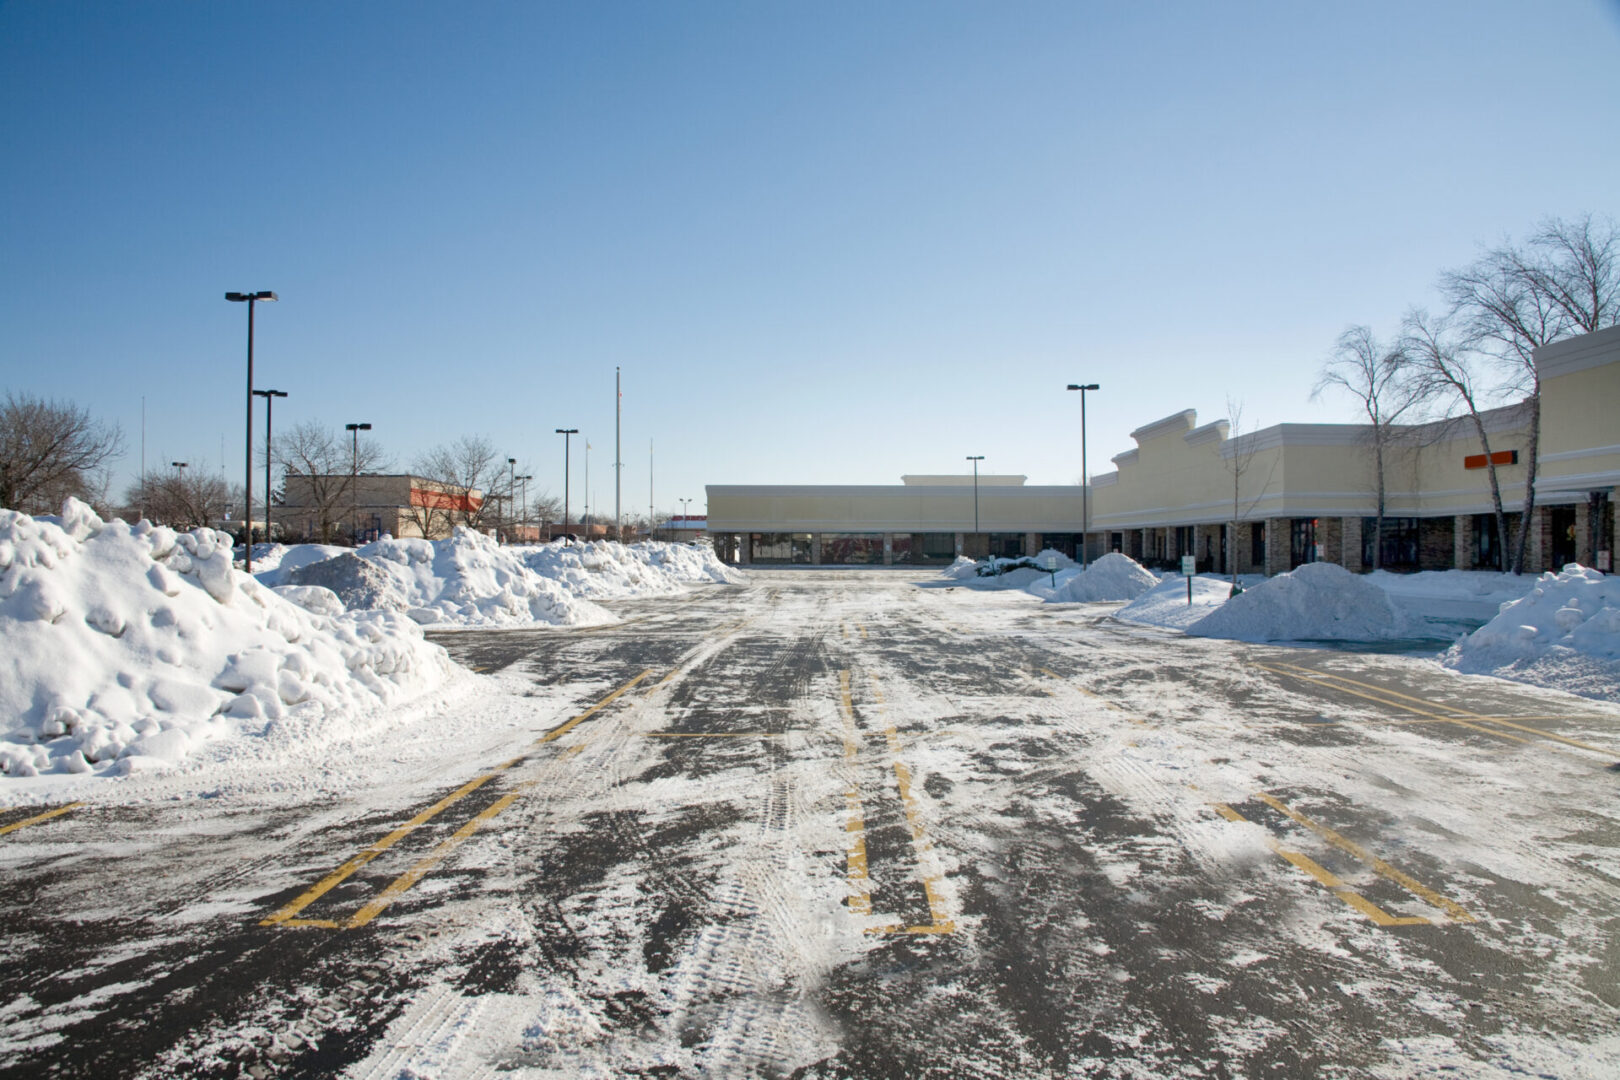 an empty plowed parking lot after the  snows of 2008 in Chicago area.